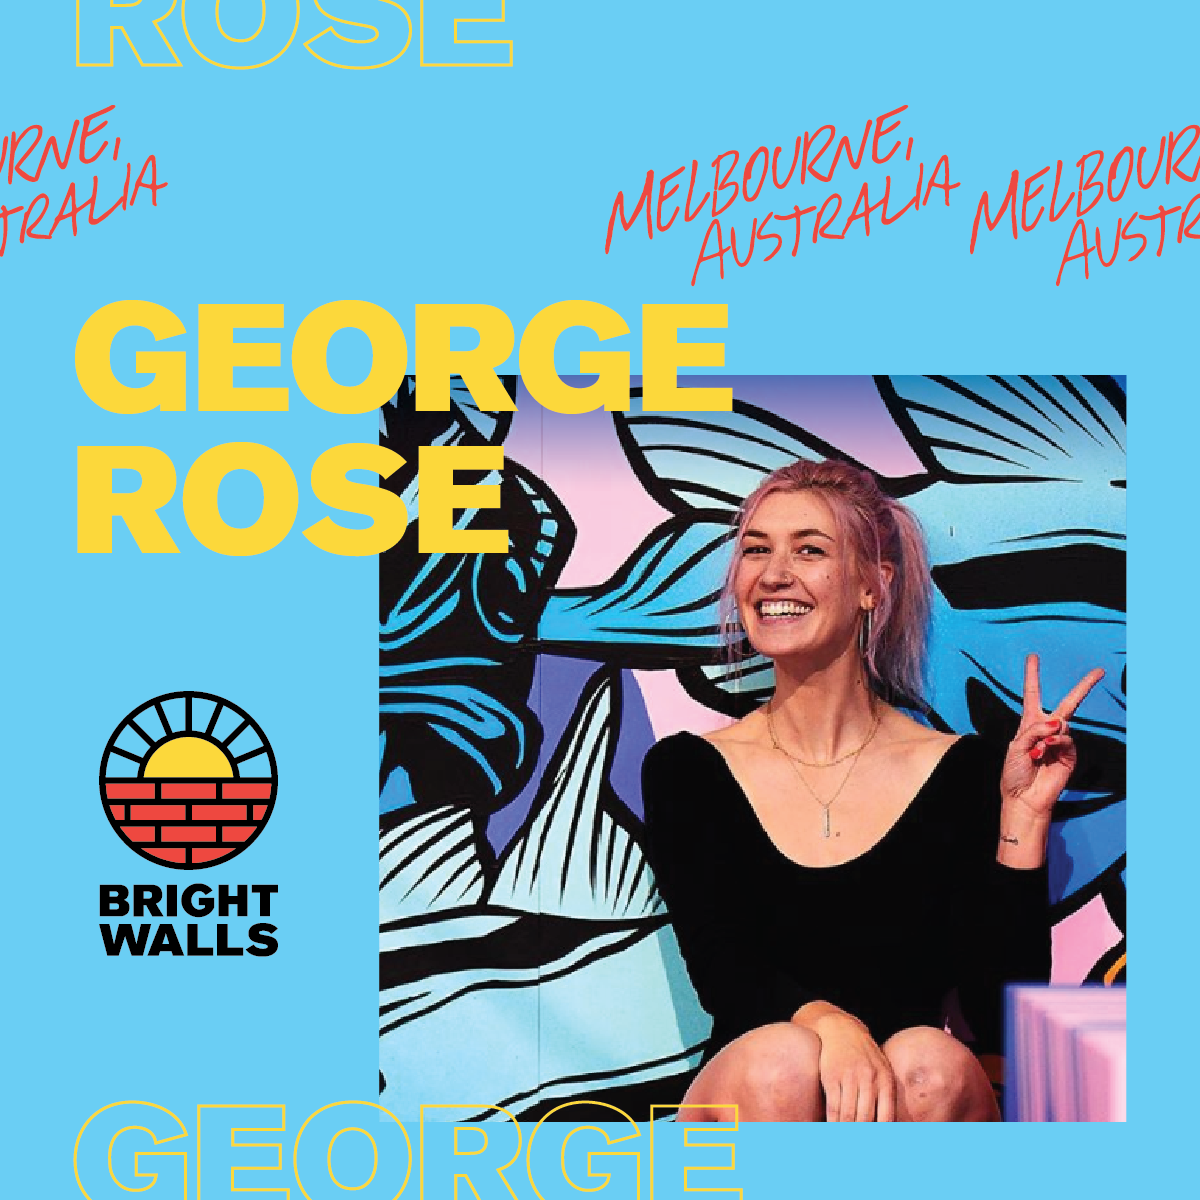 George RoseMelbourne, Australia 🇦🇺 - George Rose is often mistaken for a boy. She is actually a visual artist with a flair for not taking life too seriously. George hails from Melbourne, Australia and has a love for painting colorful murals that become a favorite destination for Instagram photographers.She spends most of her time up ladders painting murals and sometimes makes it into her studio just to try something a bit more normal. She feels most at home with a paintbrush in hand but also likes the feel of a pen, spray can or drill.Mural Partner: Commonwealth